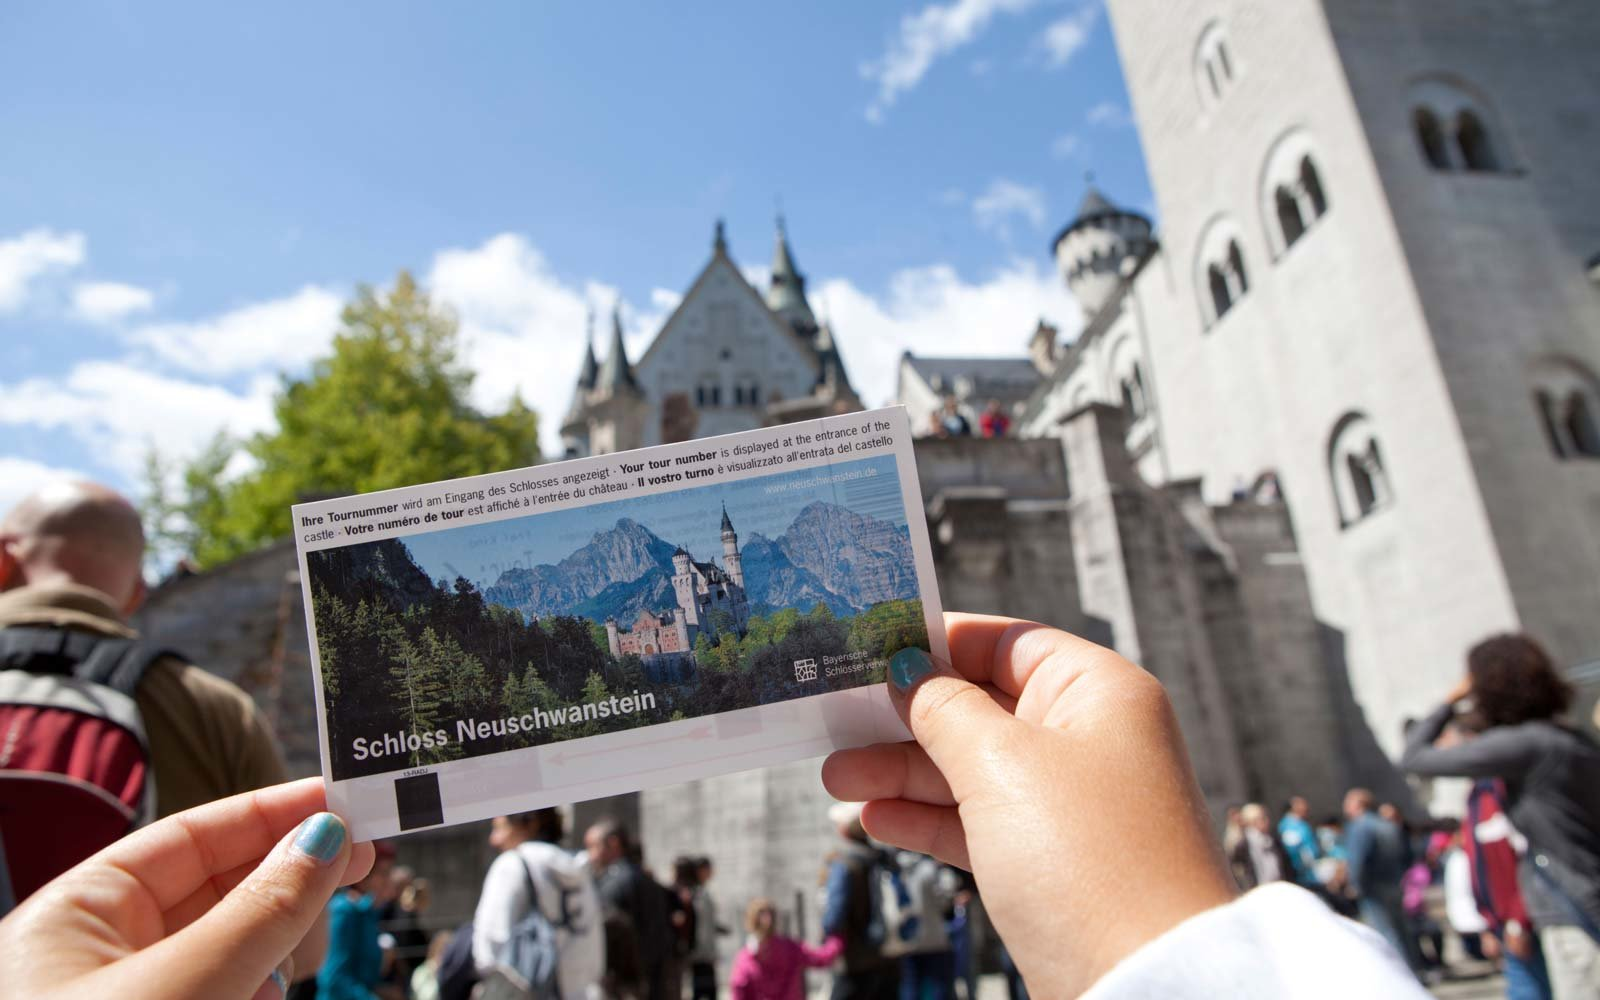 Tickets for Neuschwanstein Castle